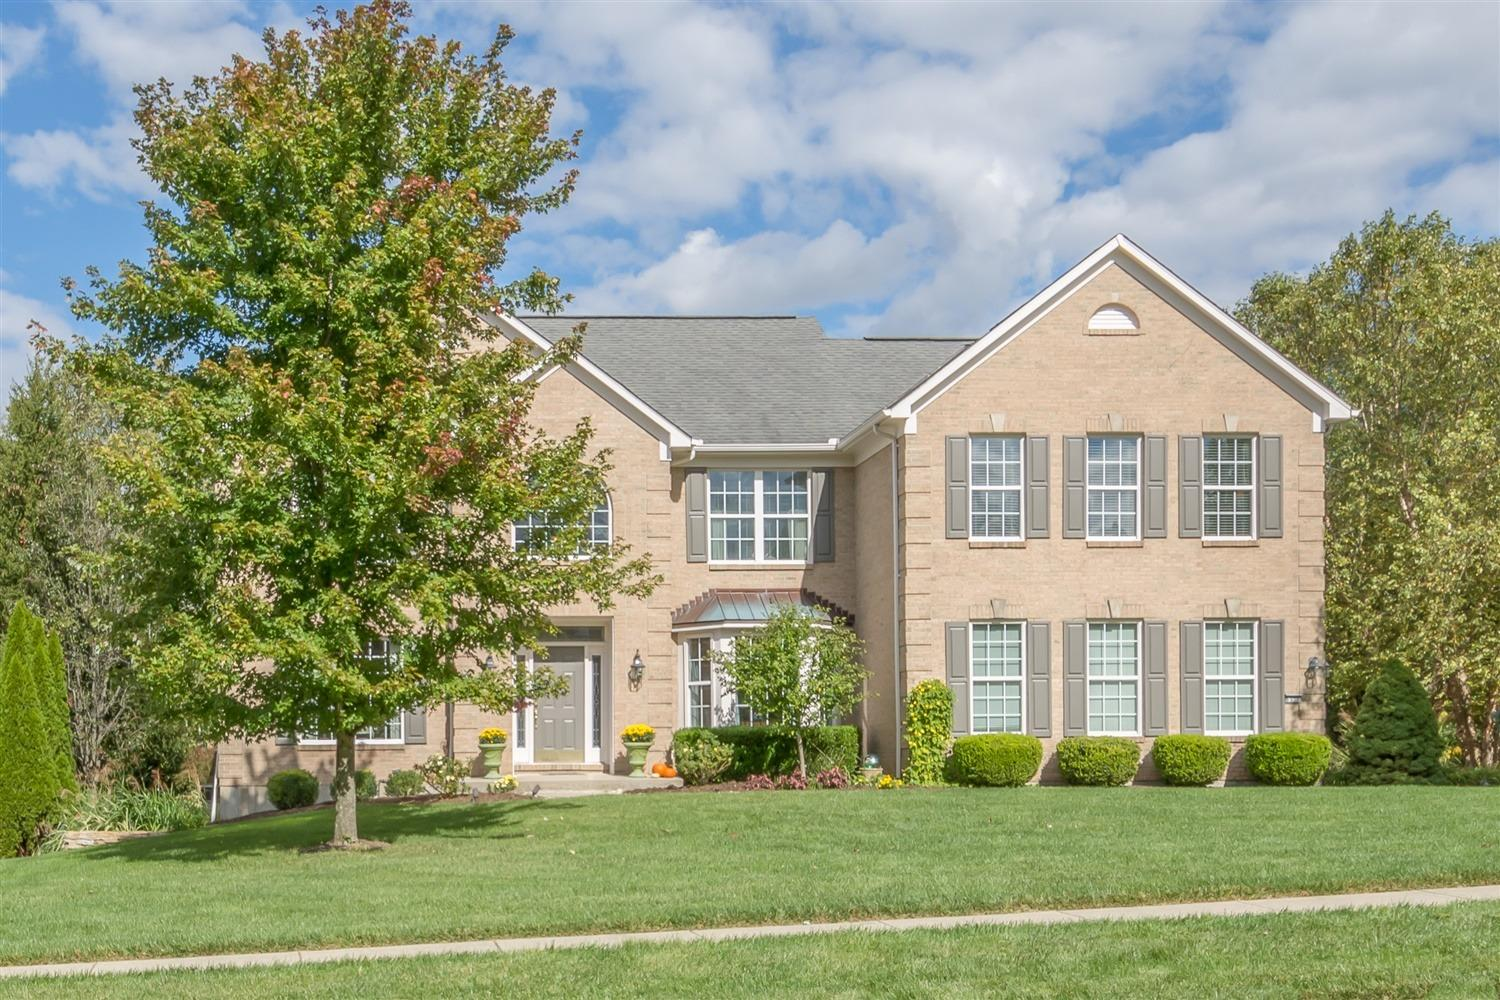 Property for sale at 6938 Turpin View Drive, Anderson Twp,  Ohio 45244